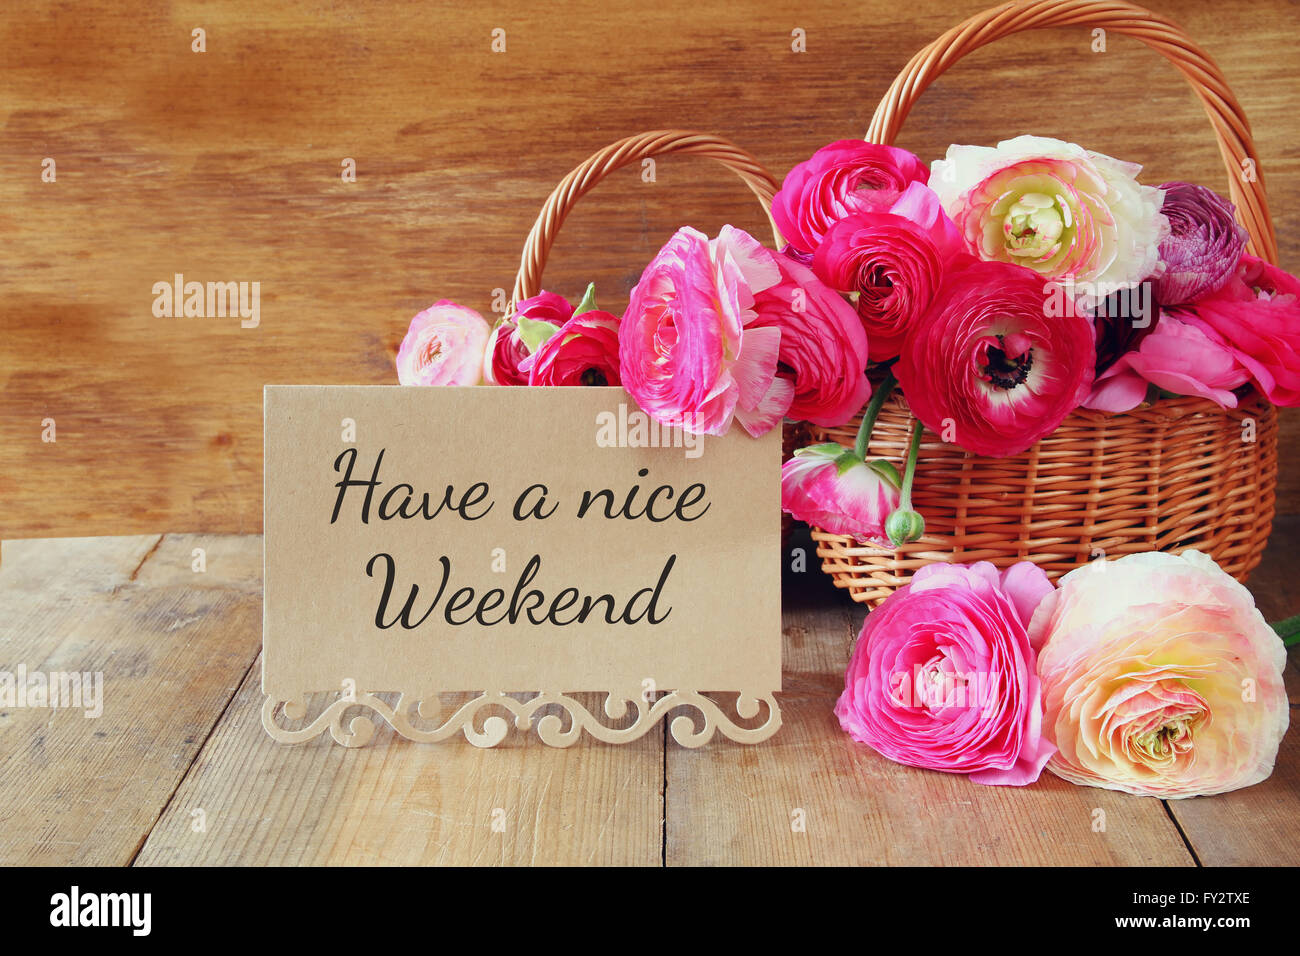 pink flowers in the basket next to card with phrase: HAVE A NICE WEEKEND, on wooden table - Stock Image